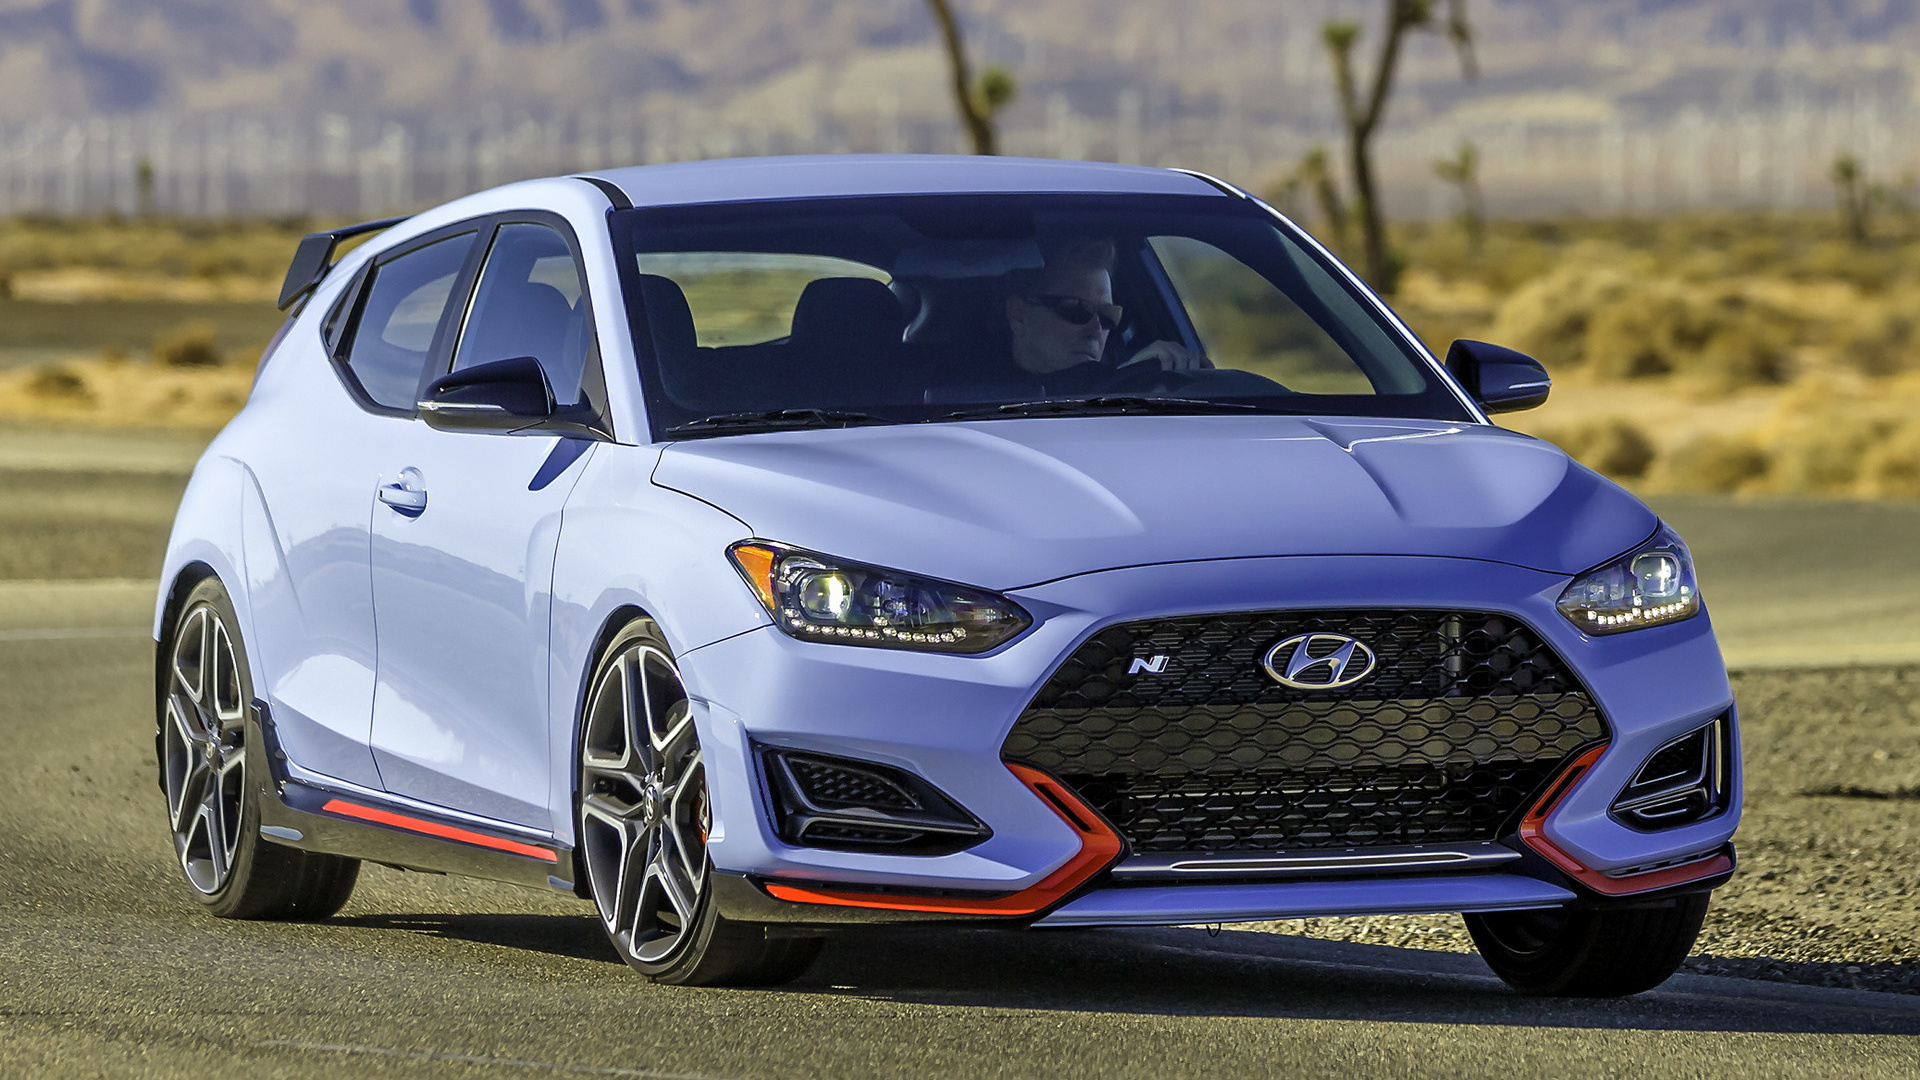 Hyundai Veloster Rally >> 2019 Hyundai Veloster N (US) - Wallpapers and HD Images